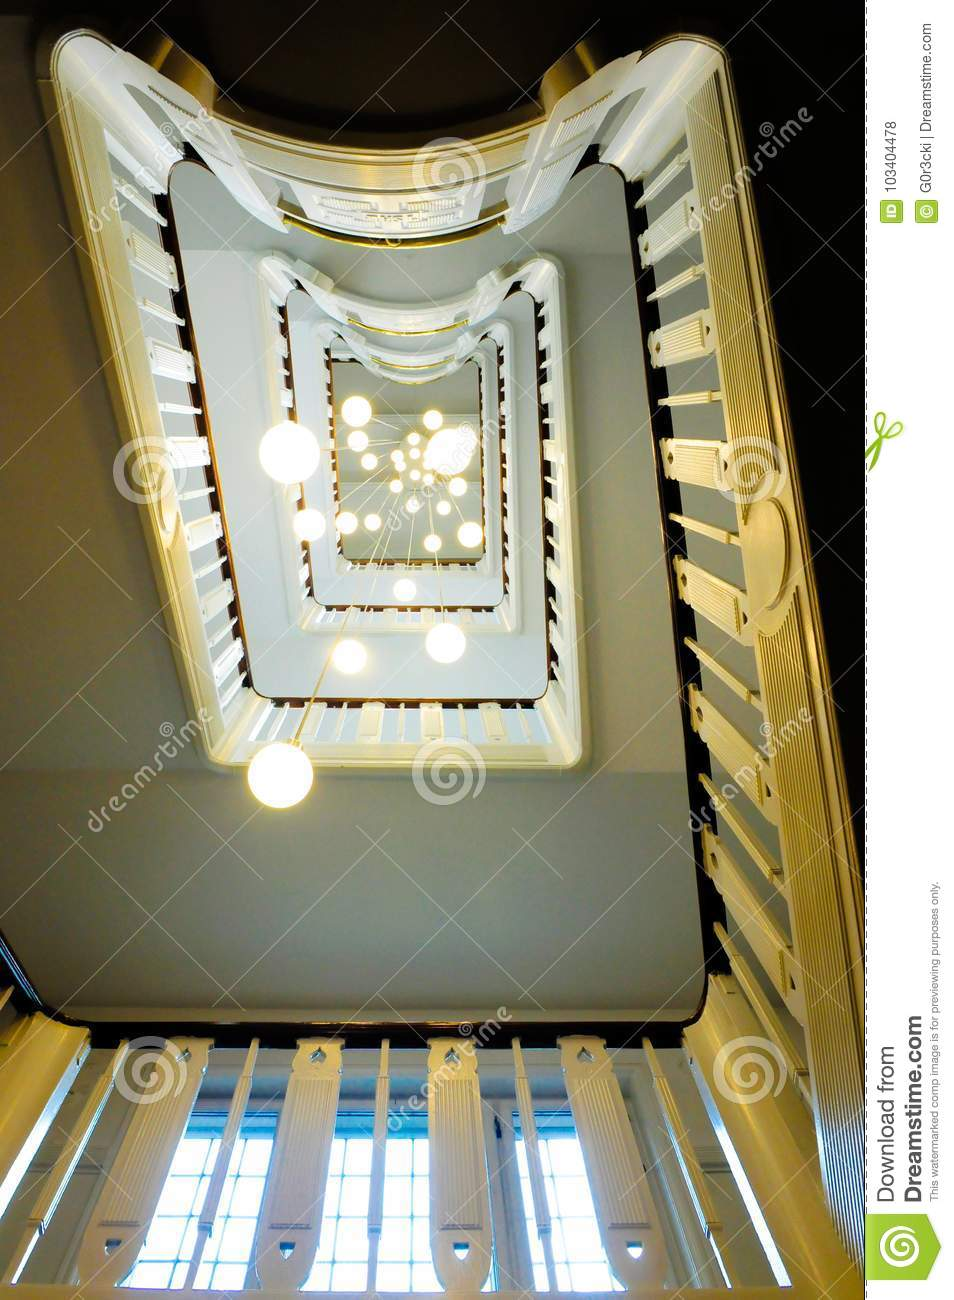 Staircase and Ceiling Lamps in Perspective